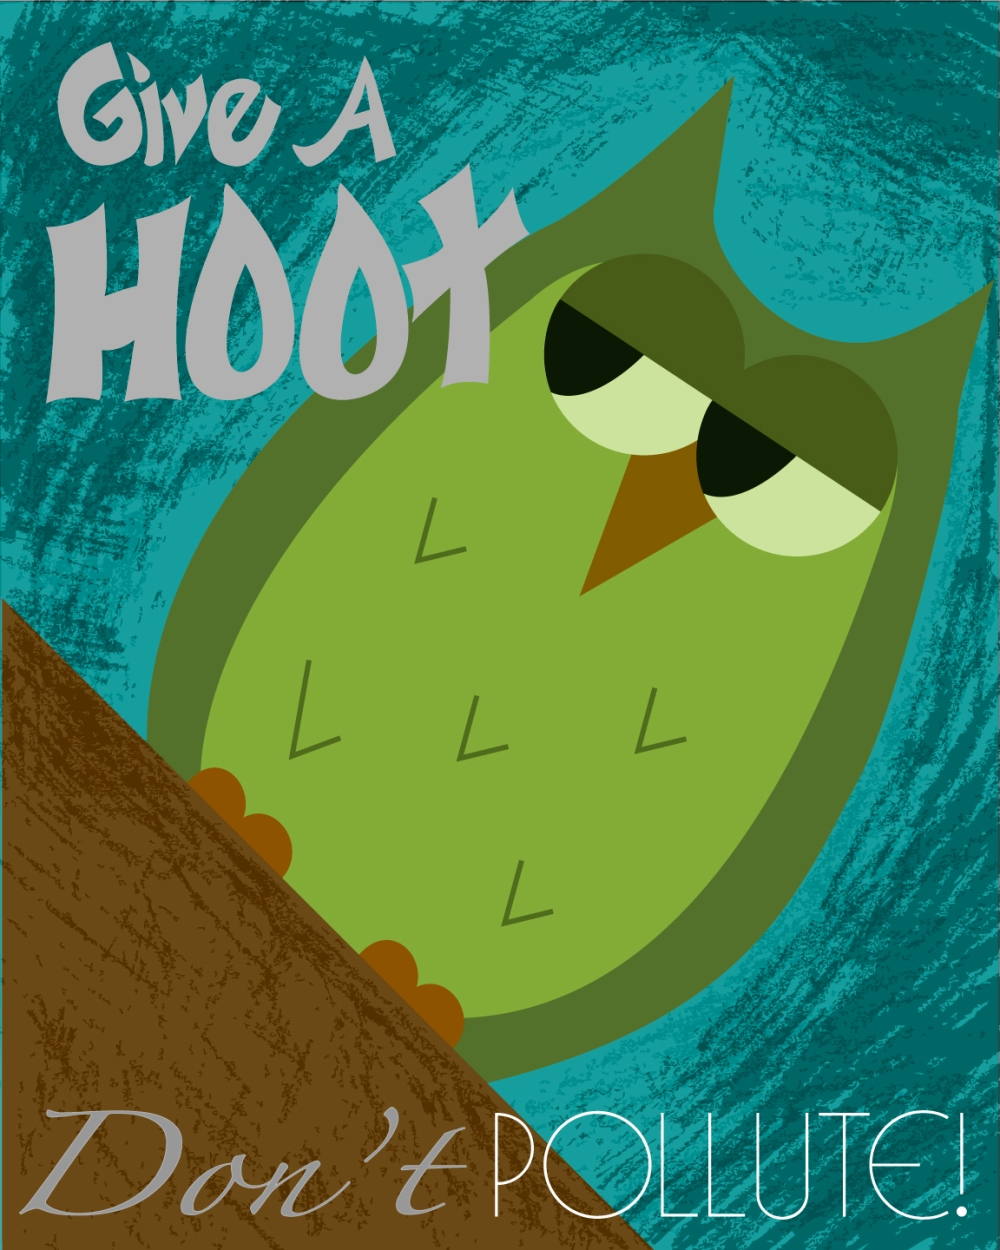 Give-a-hoot-teal